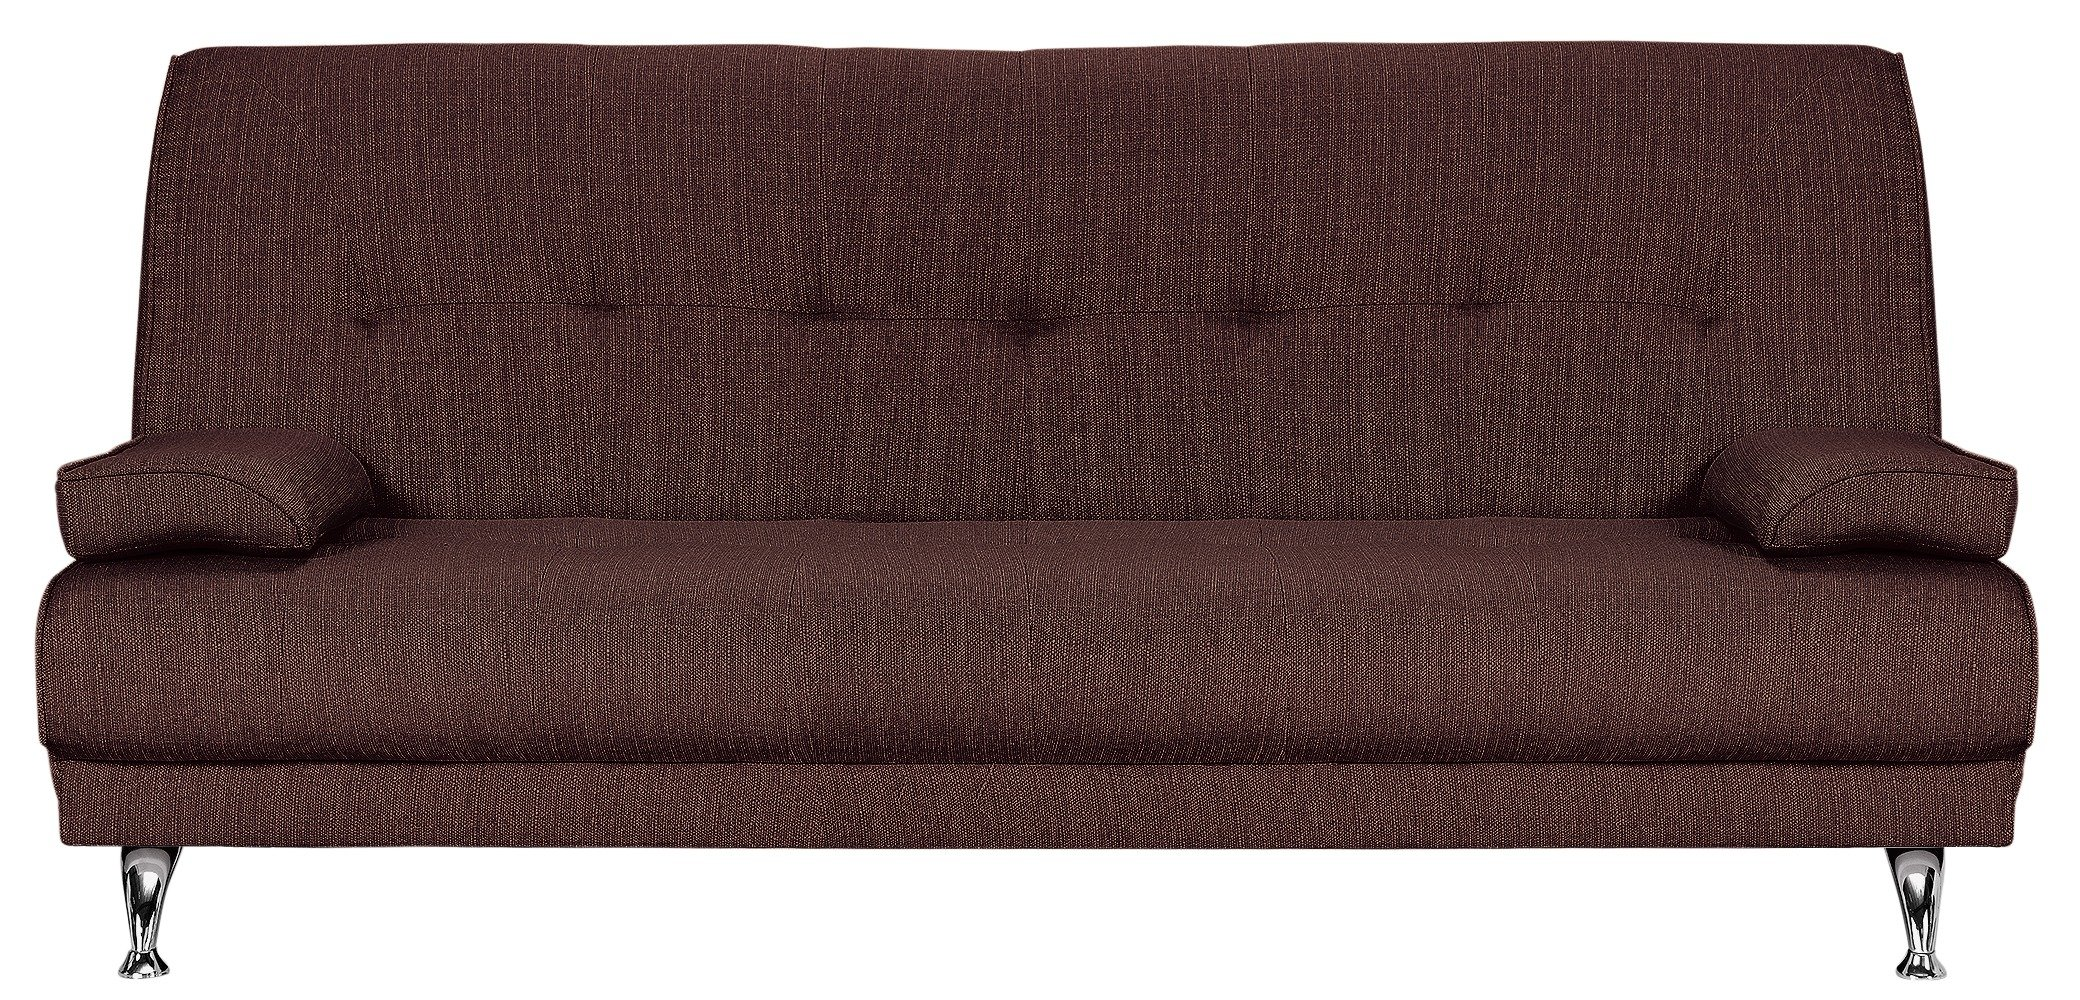 argos marwell clic clac sofa bed average cost to reupholster a uk sale on home sicily 2 seater fabric